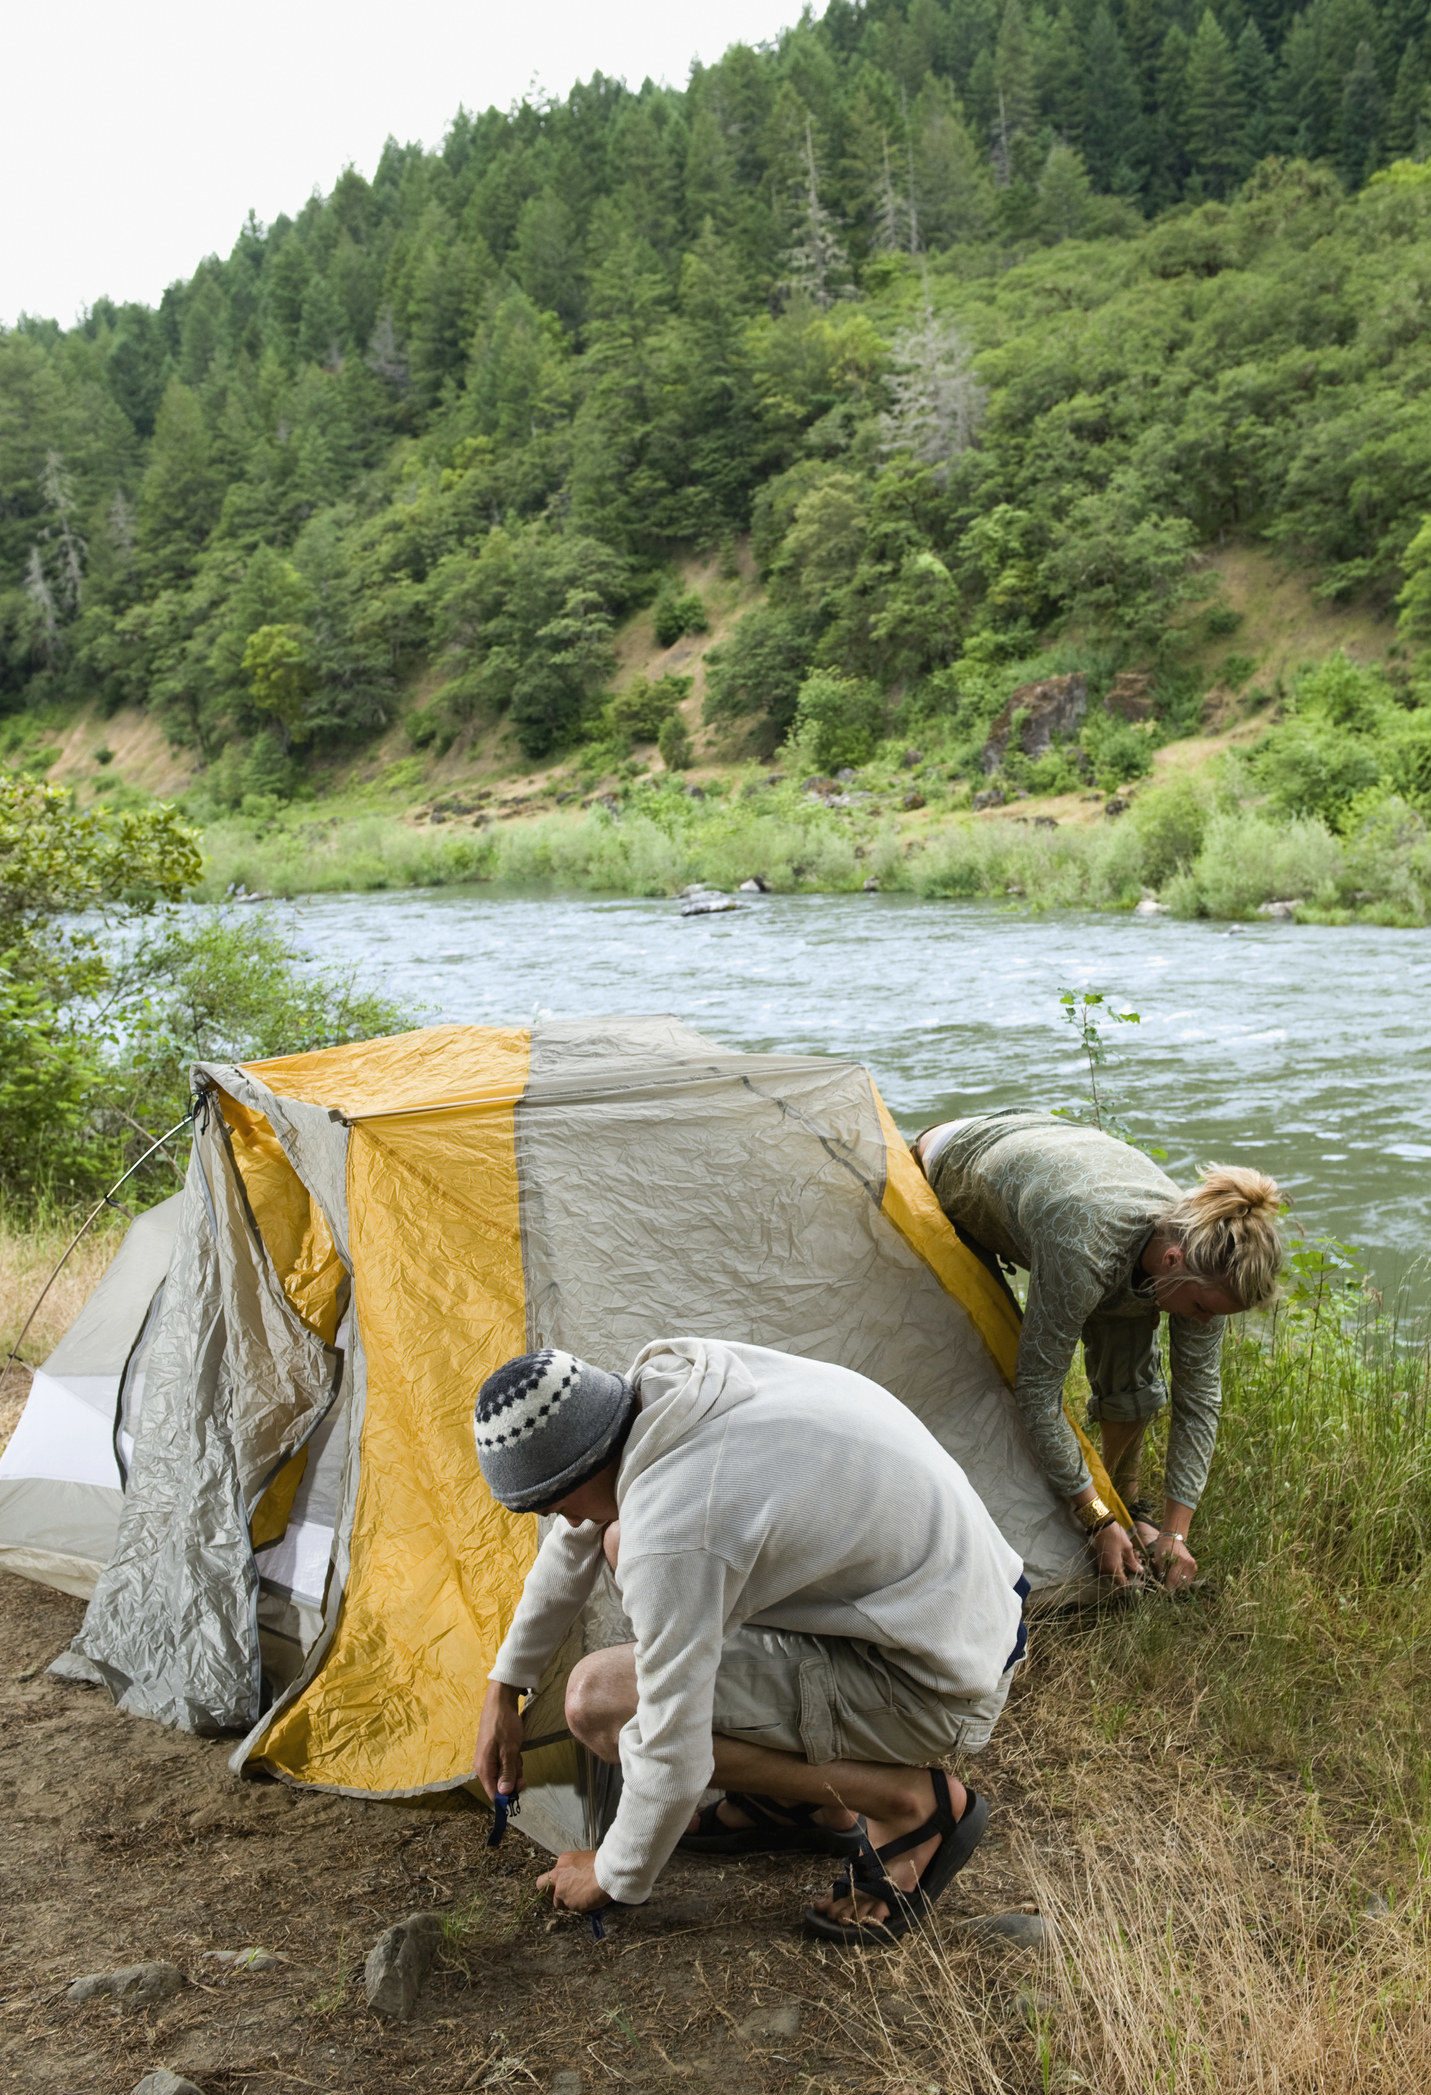 A couple setting up their tent.